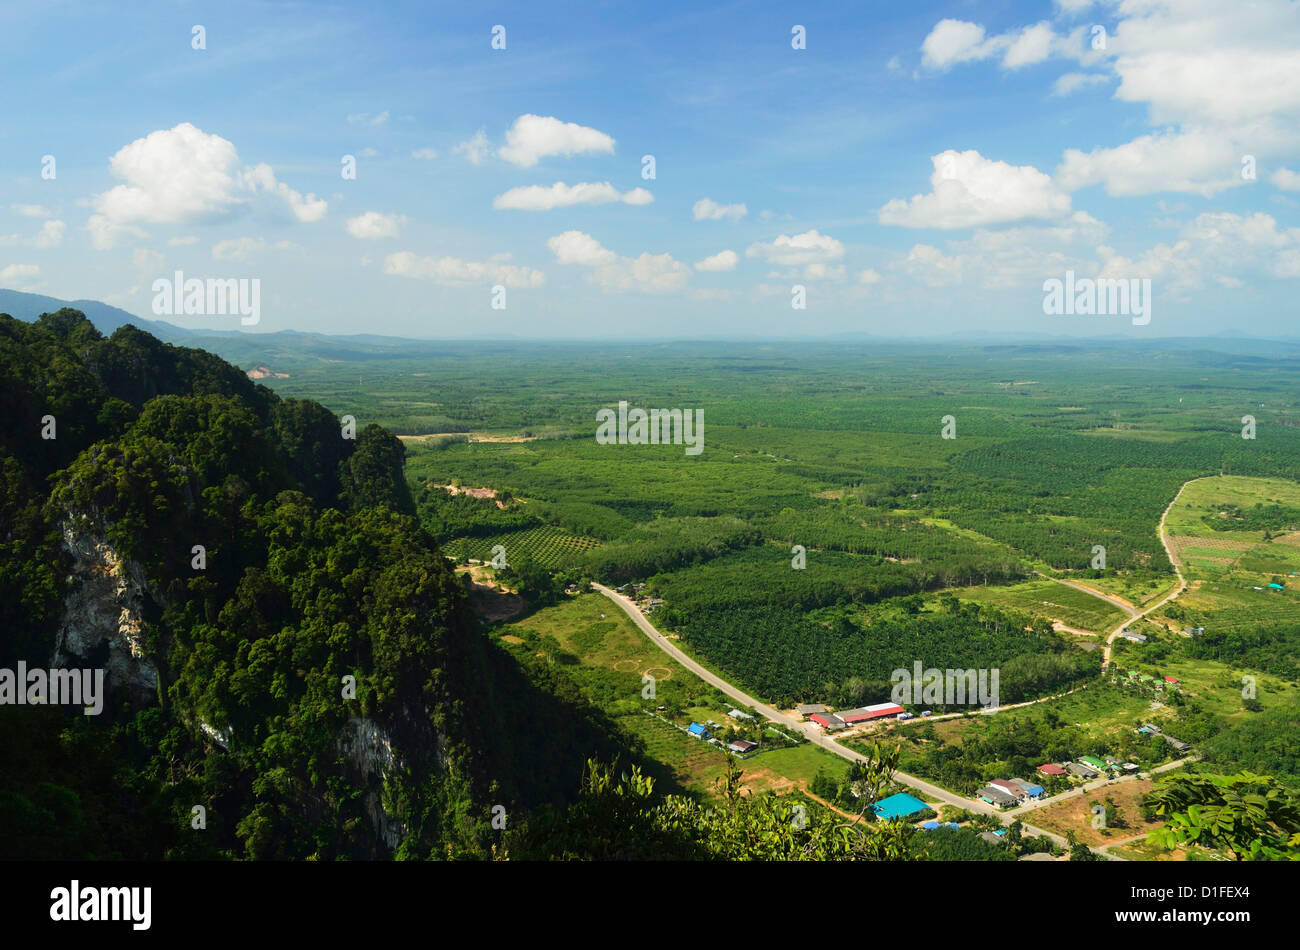 View from top of Tiger Cave Temple (Wat Tham Suea), Krabi Province, Thailand, Southeast Asia, Asia - Stock Image